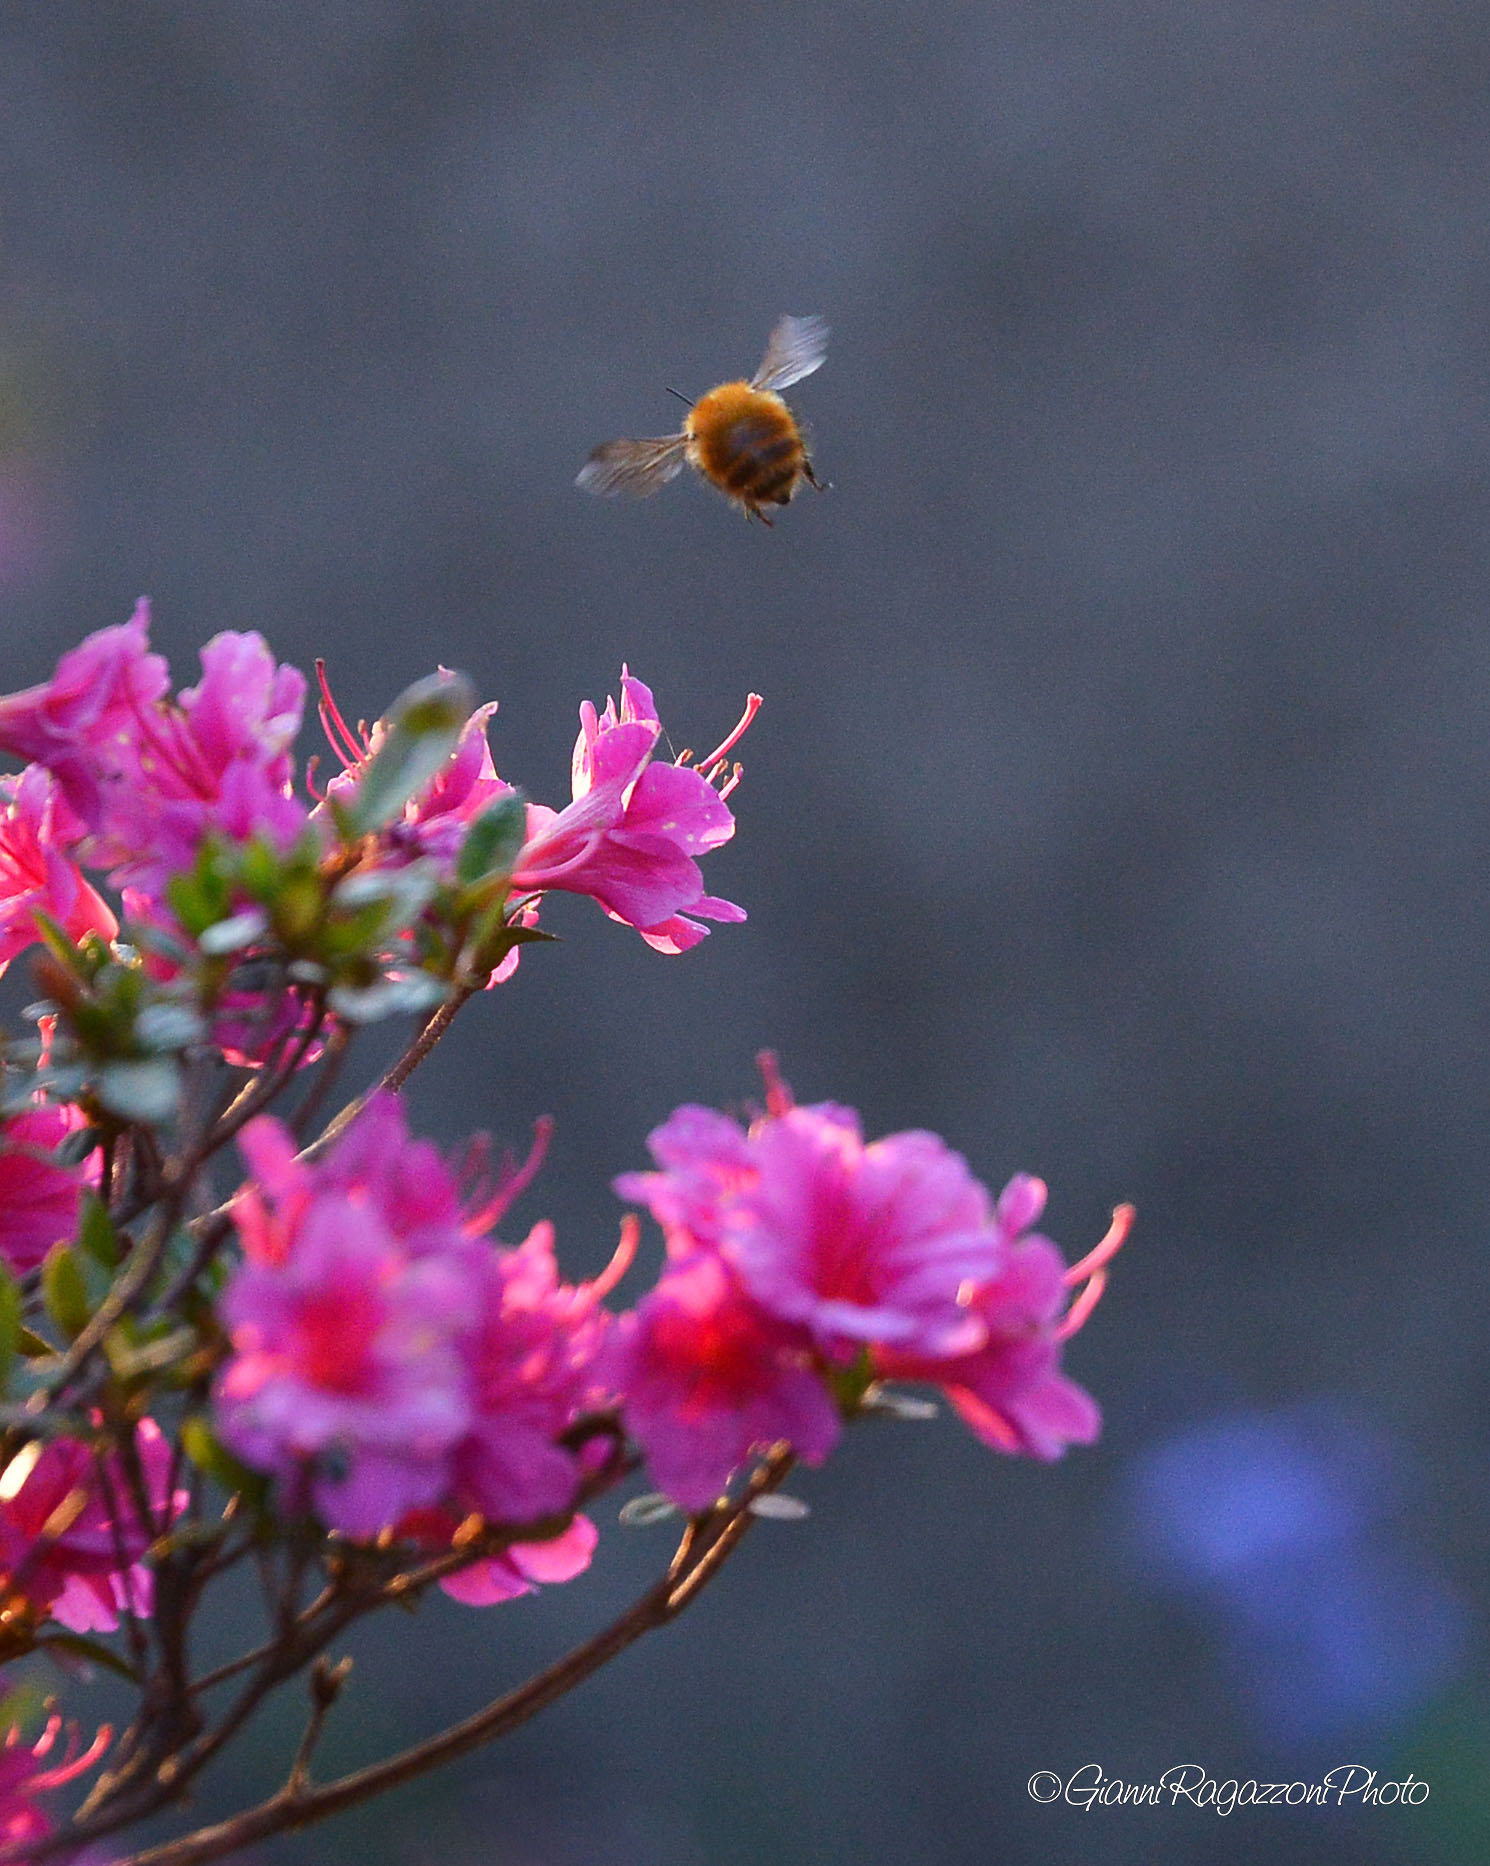 Bee at work...